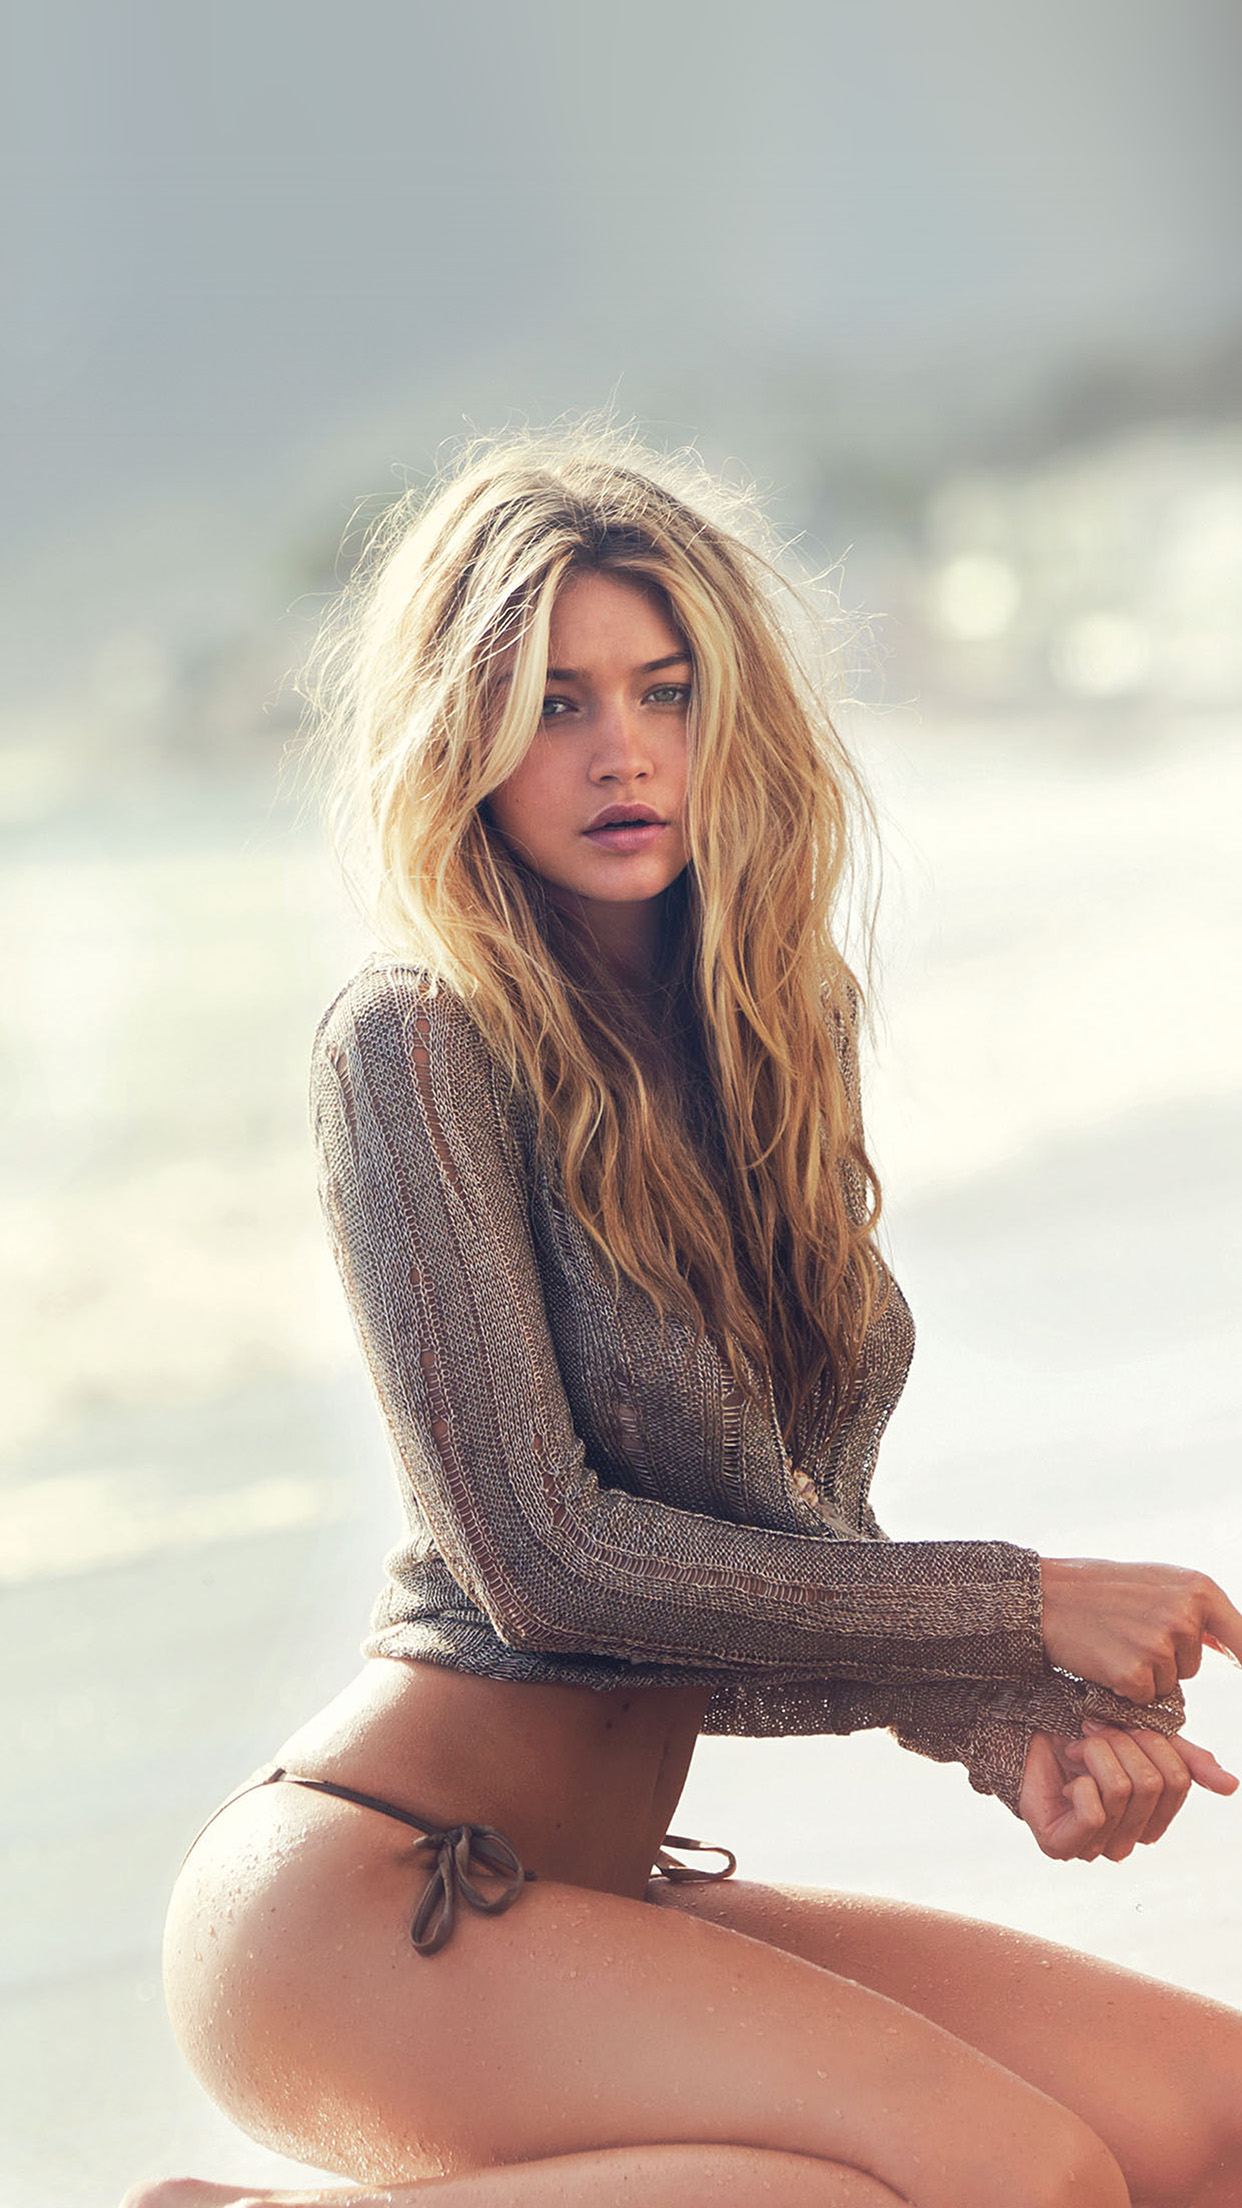 hg38-guess-model-gigi-hadid-summer-sexy - Papers.co